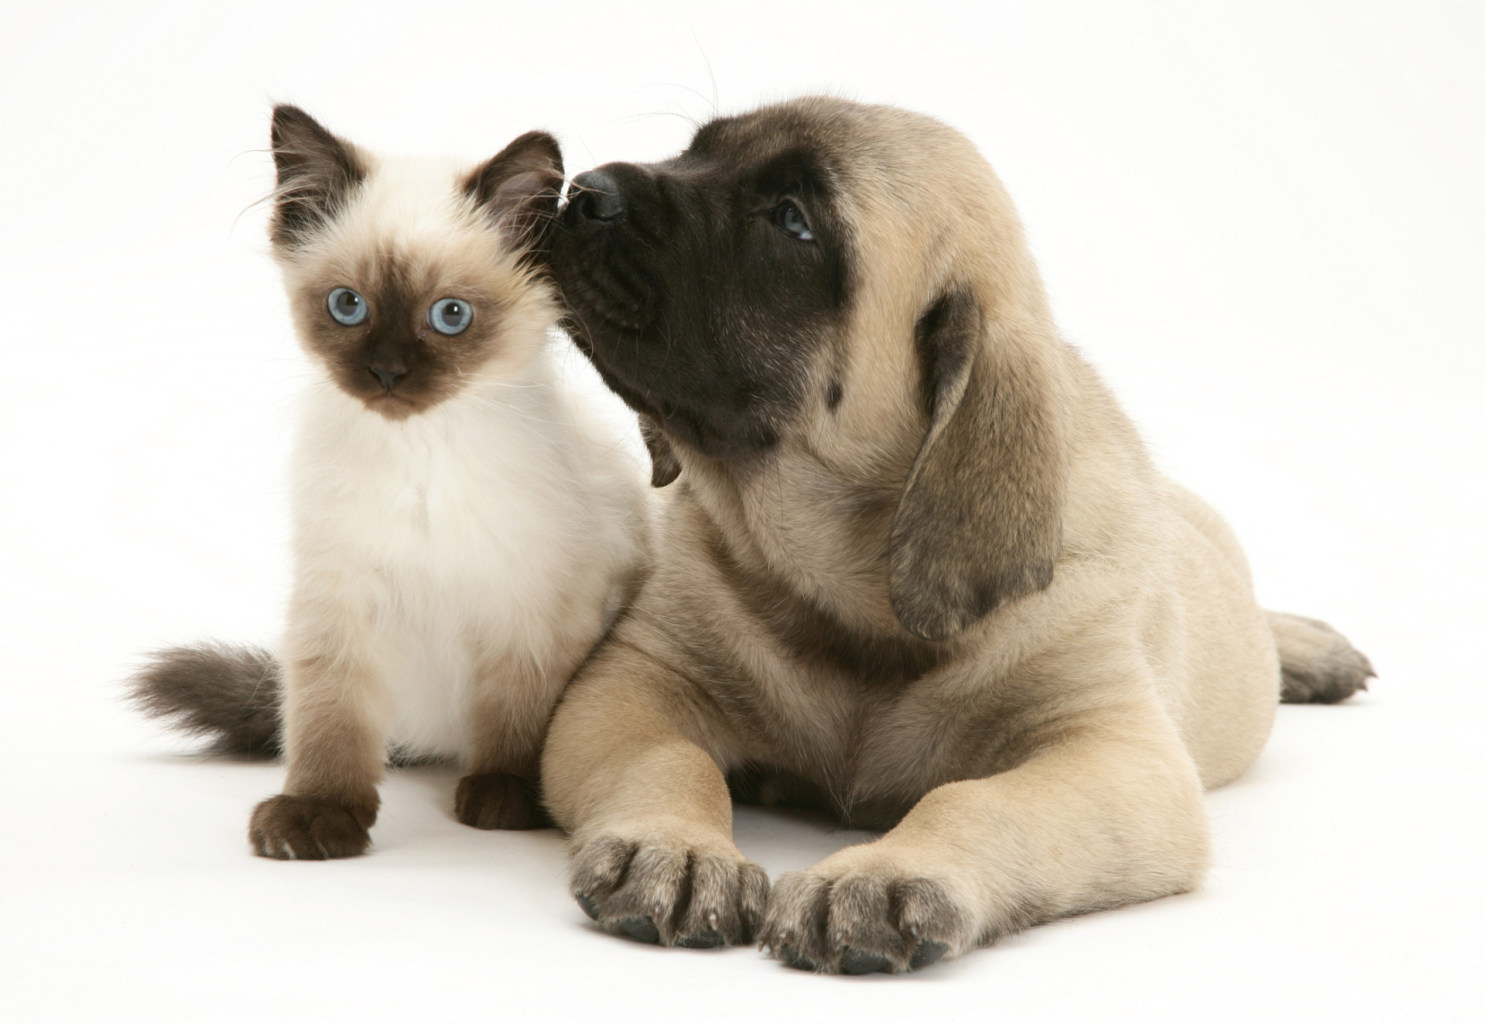 English Mastiff pup with young Birman-cross cat.